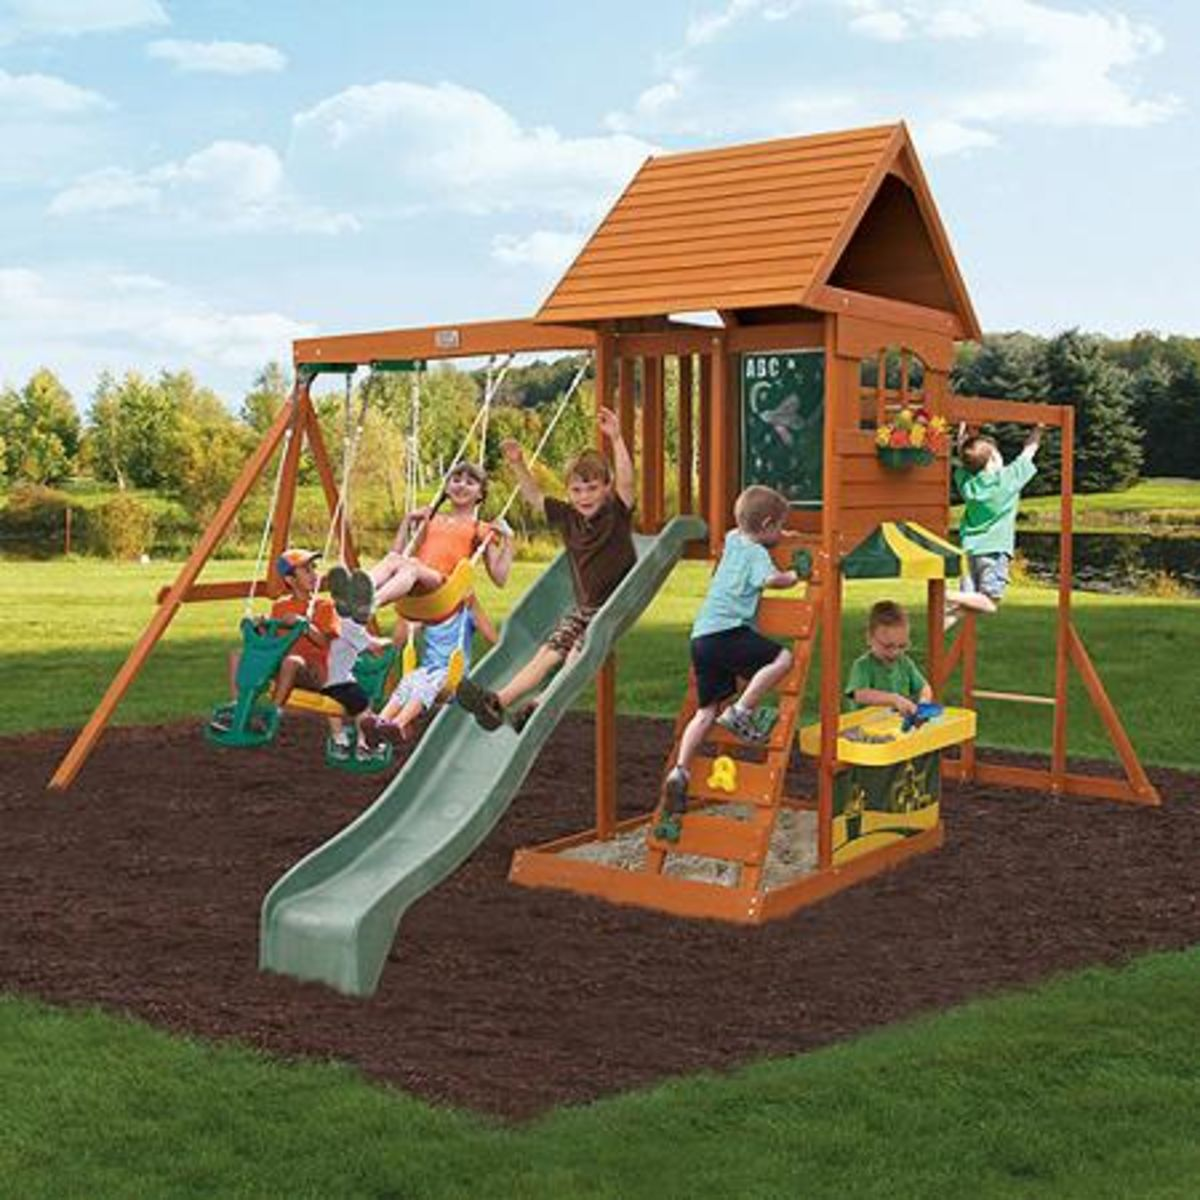 Best Rated Wooden Backyard Swing Sets For Older Kids On Sale   Reviews And  Ratings | A Listly List